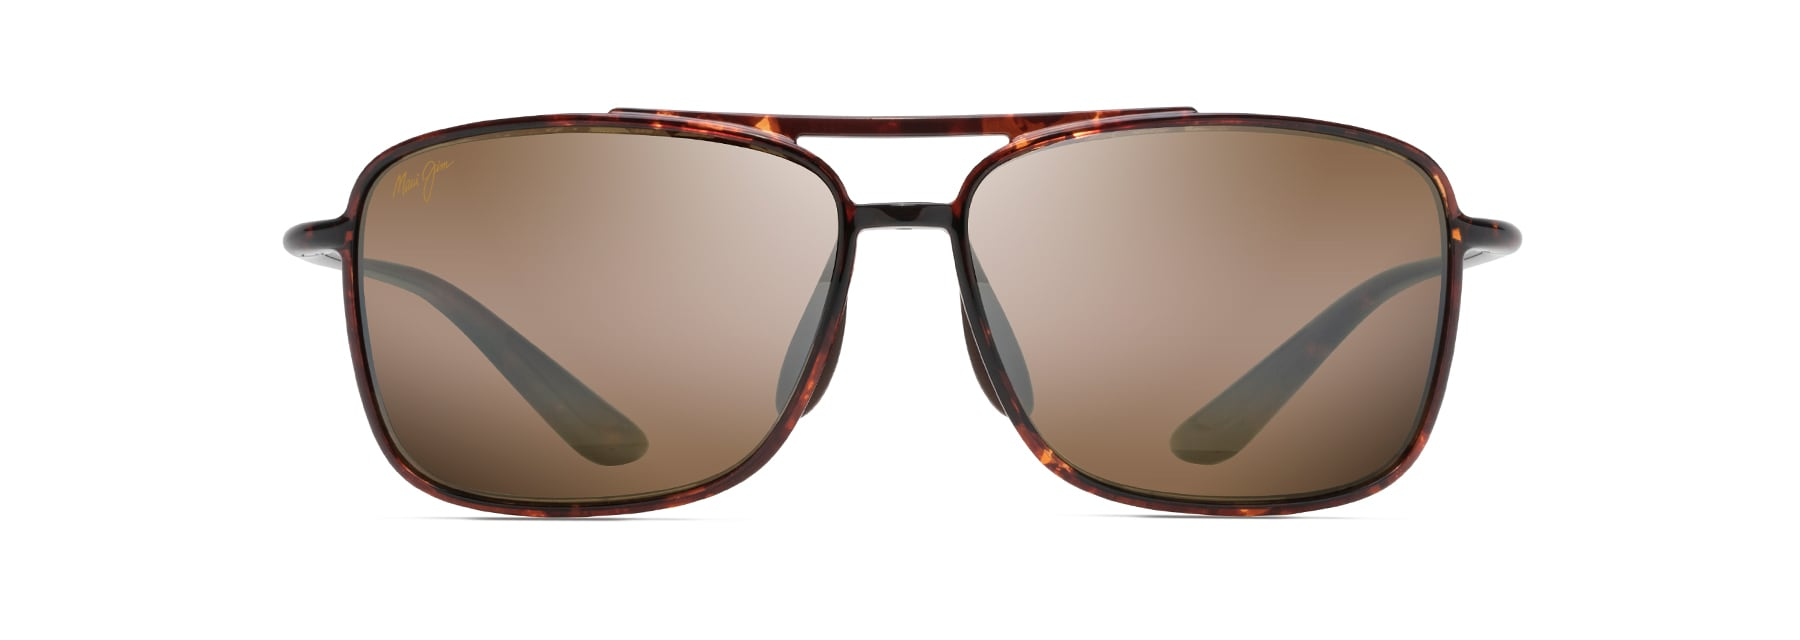 e40626a723 Kaupo Gap Polarised Sunglasses